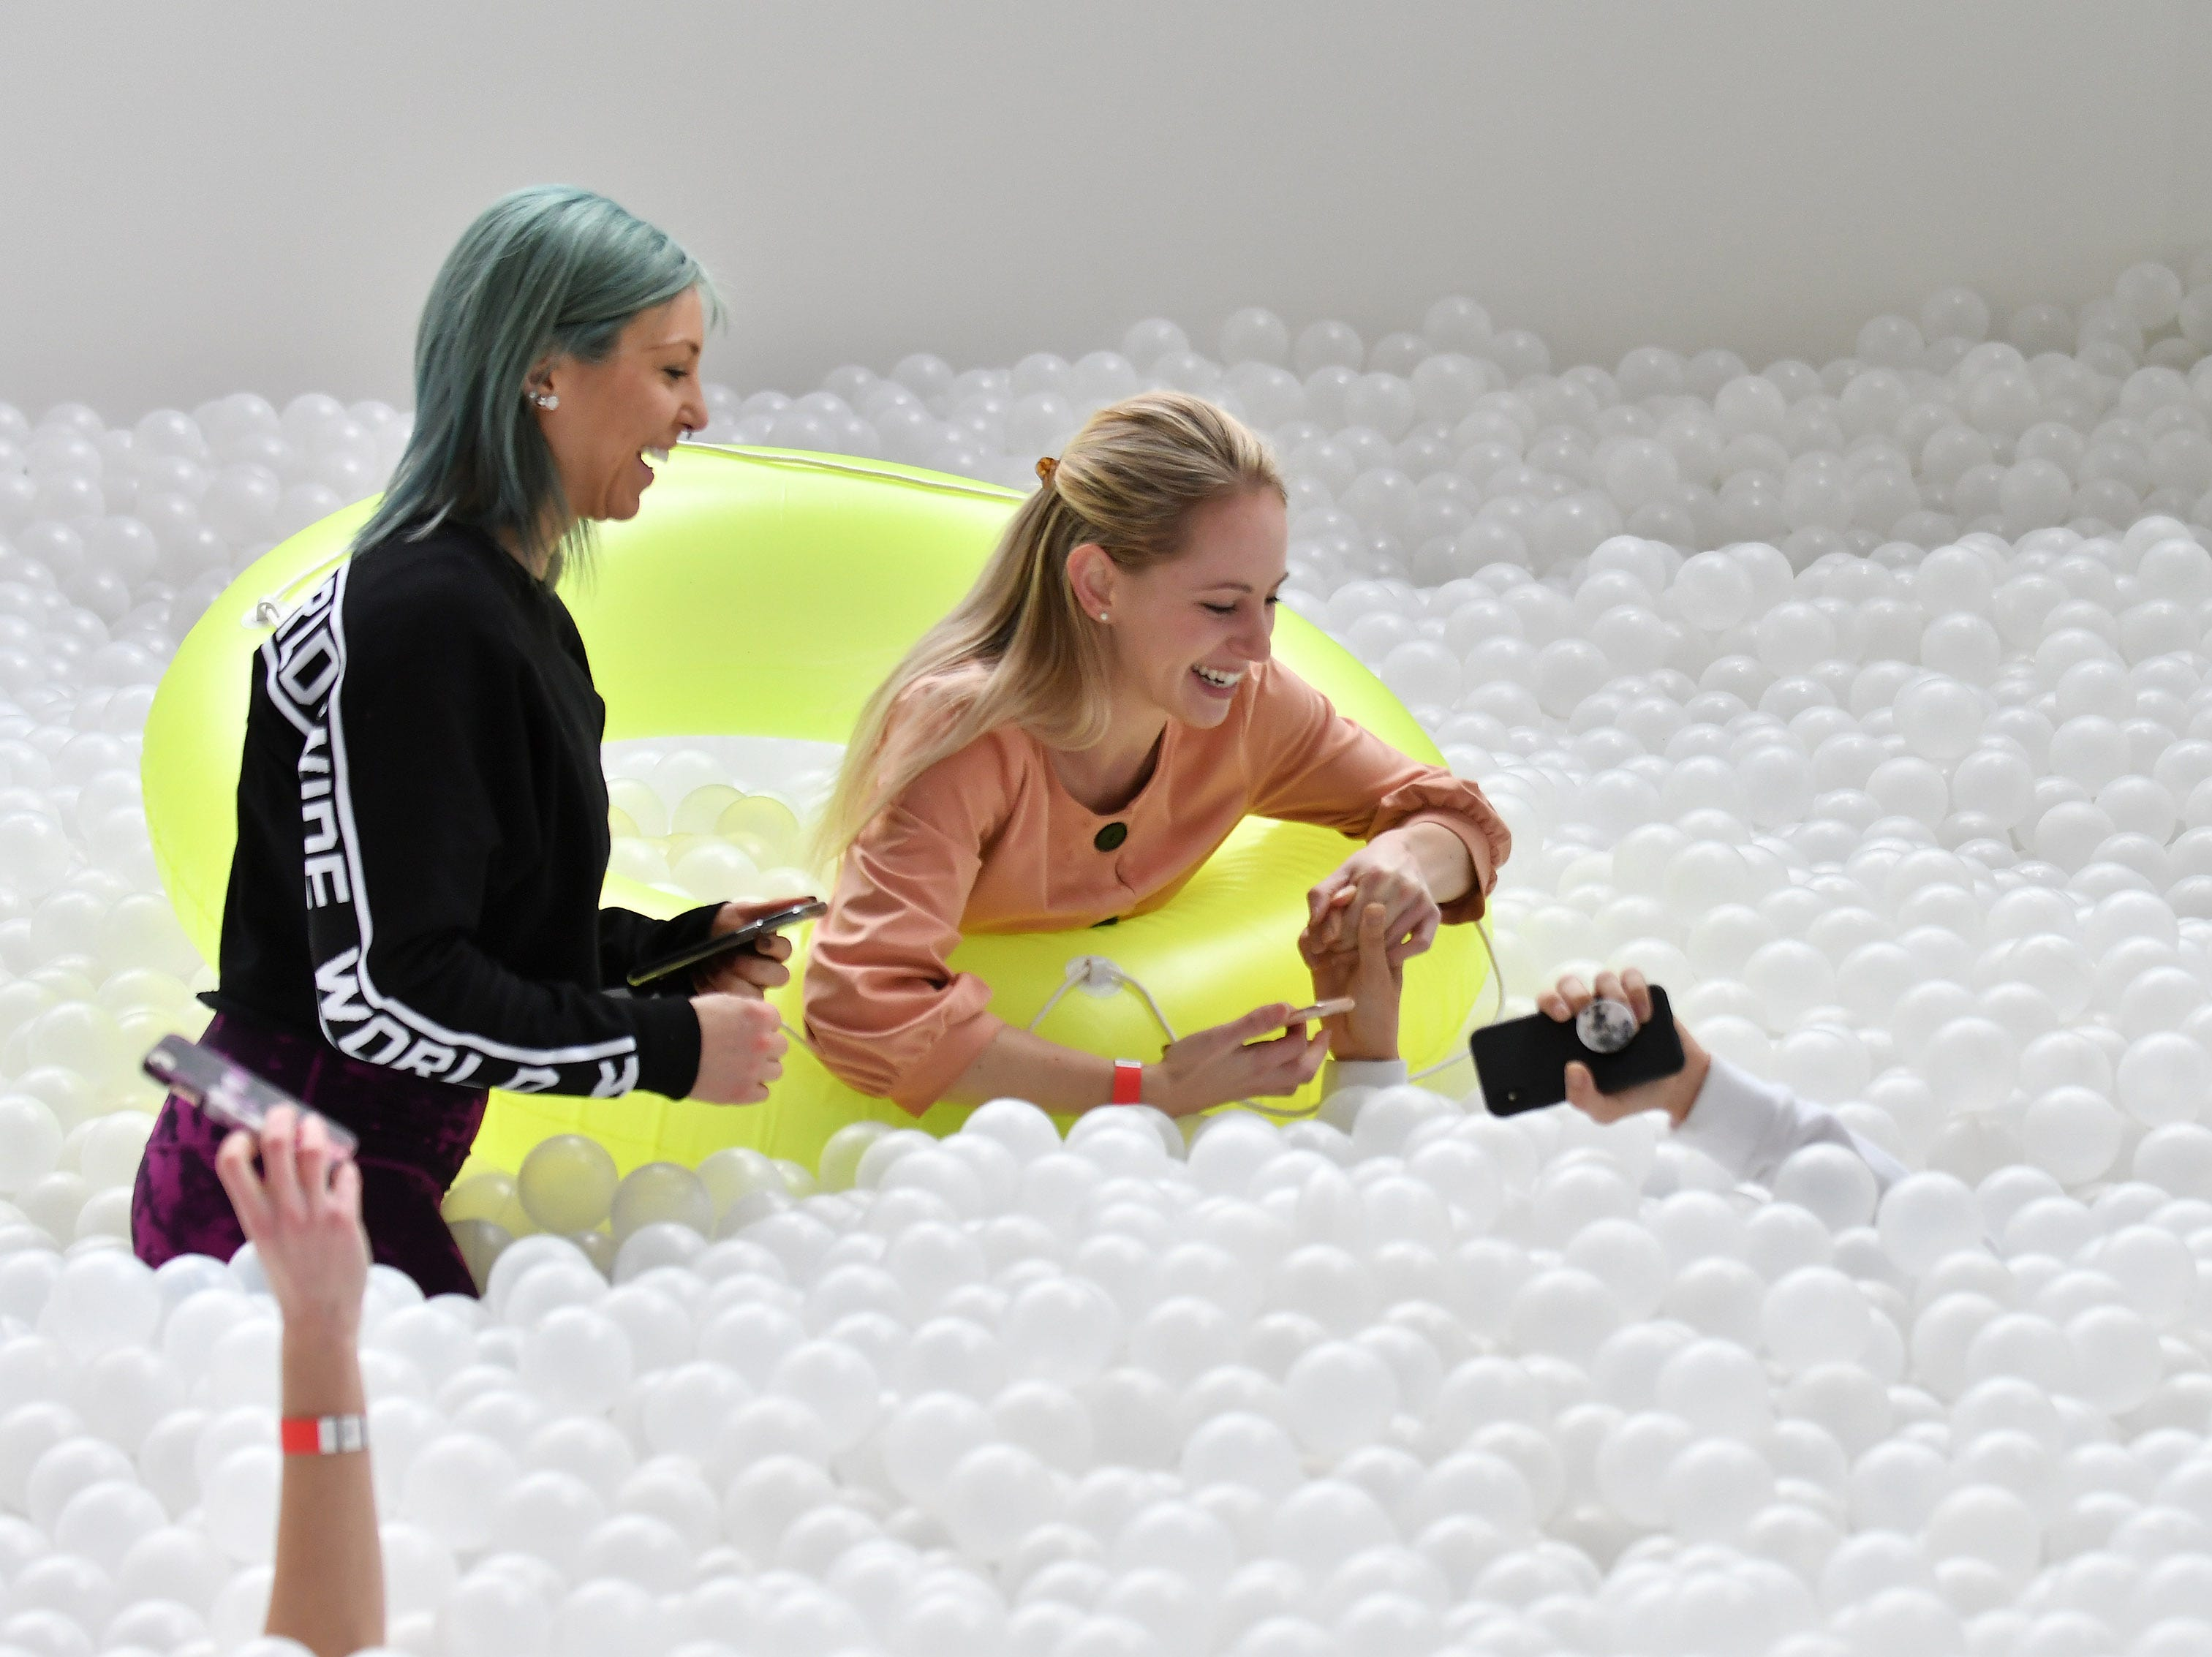 From left, Carly Kuppe, 30, of Royal Oak watches while Chelsea VanHull, 28, tries to pull up Teresa MacKinnon, 30, of Troy from beneath the surface of the balls.